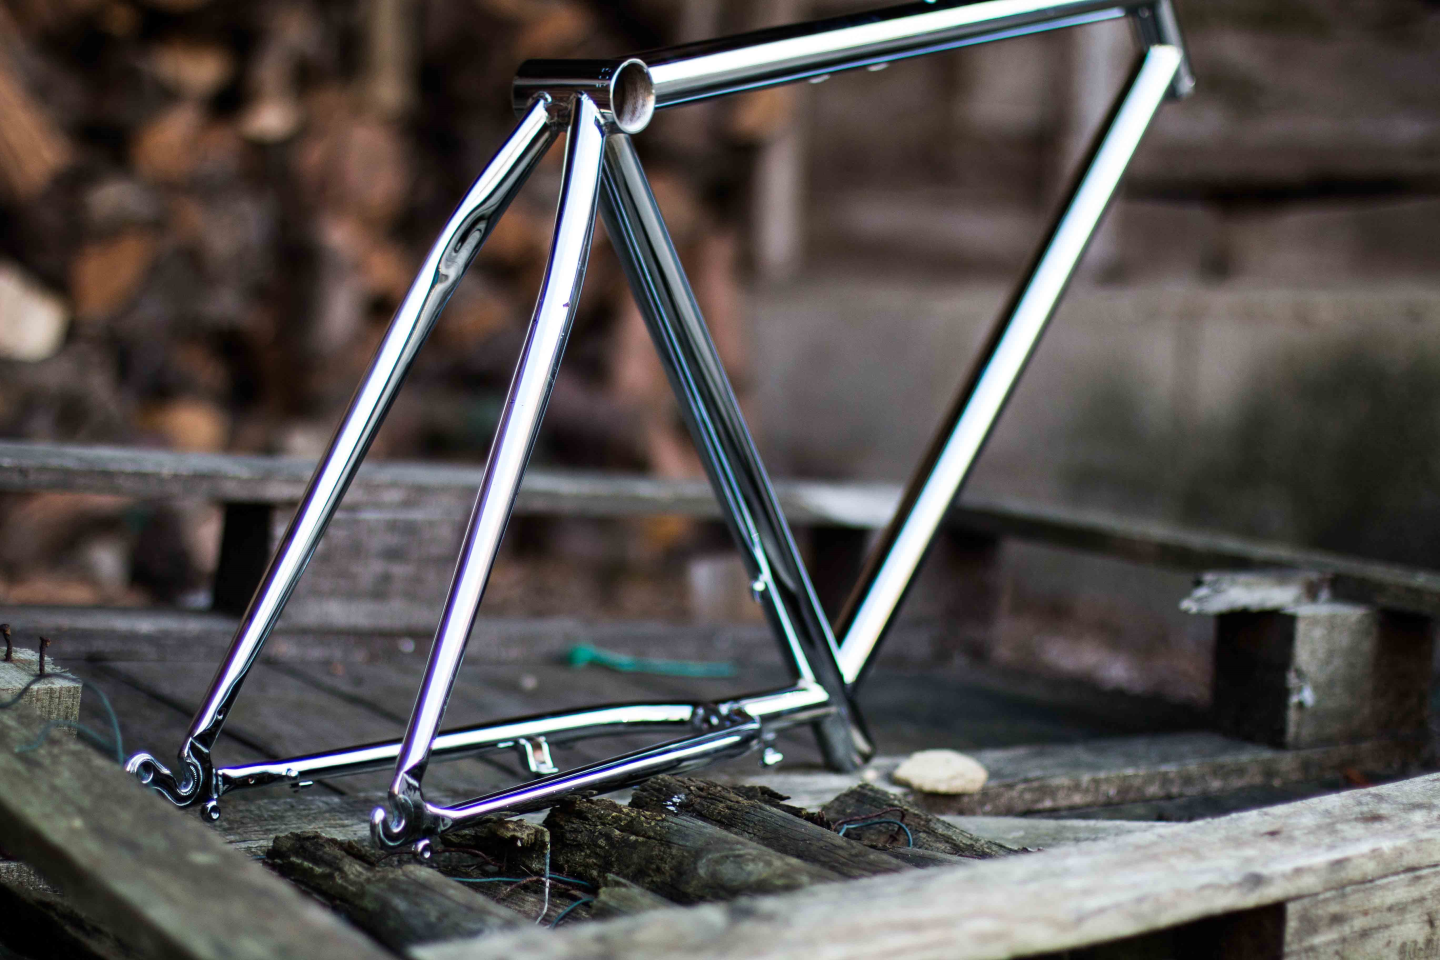 Picture of a bicycle frame finished in chrome.